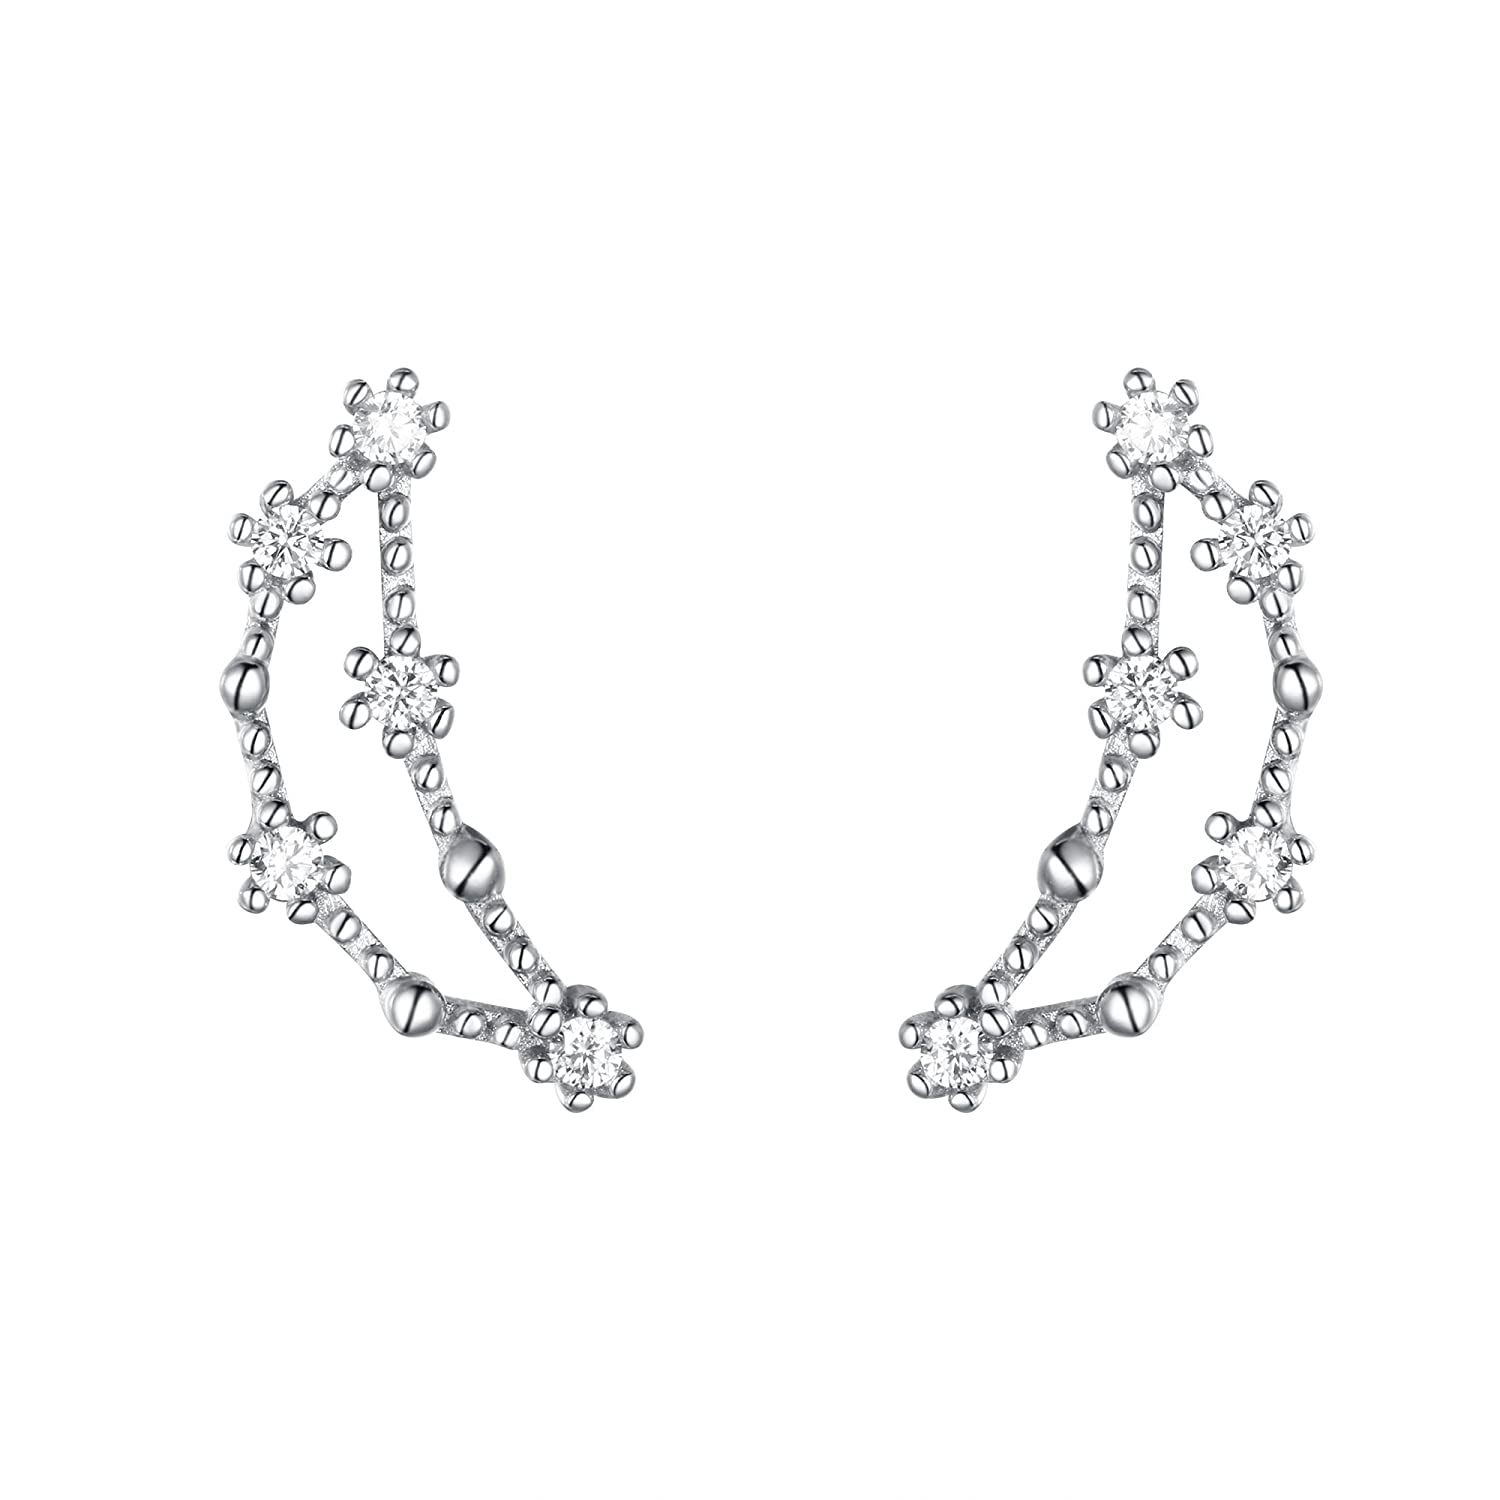 BriLove Women 925 Sterling Silver CZ Horoscope Zodiac 12 Constellation Astrology Ear Vine Crawler Post Earrings 12001976-1ca